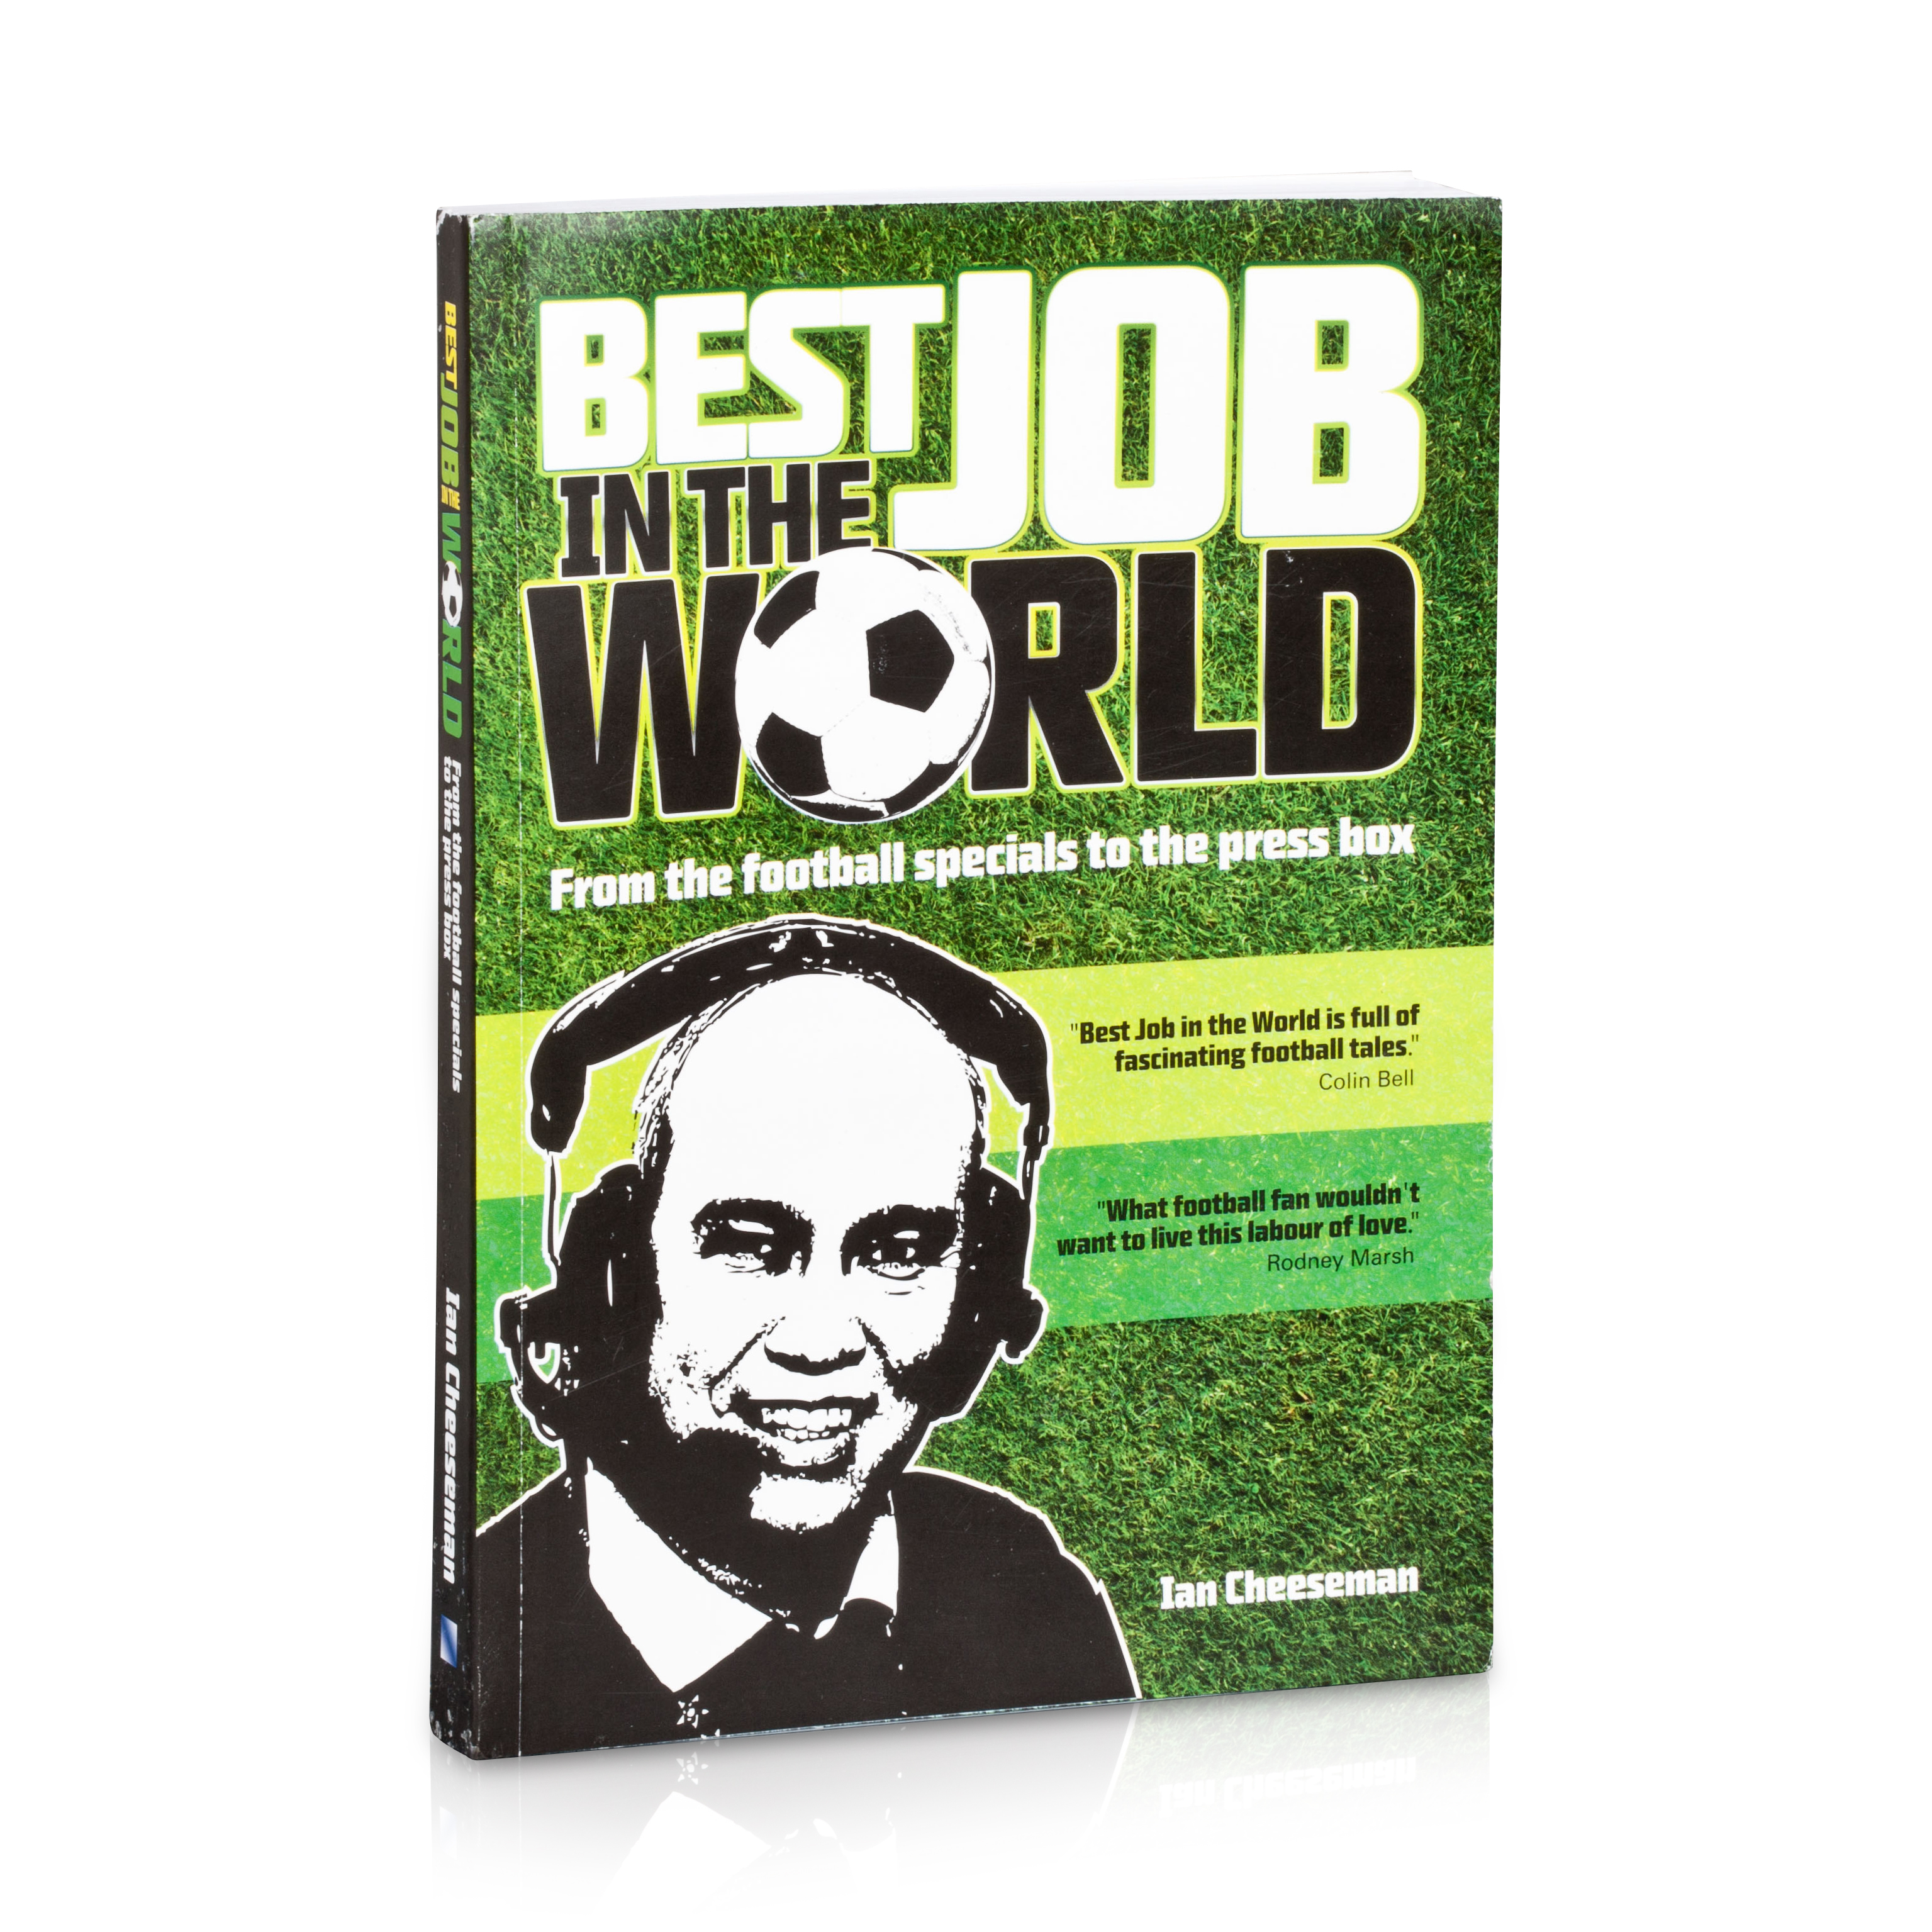 Manchester City Best Job in the World Ian Cheeseman Book